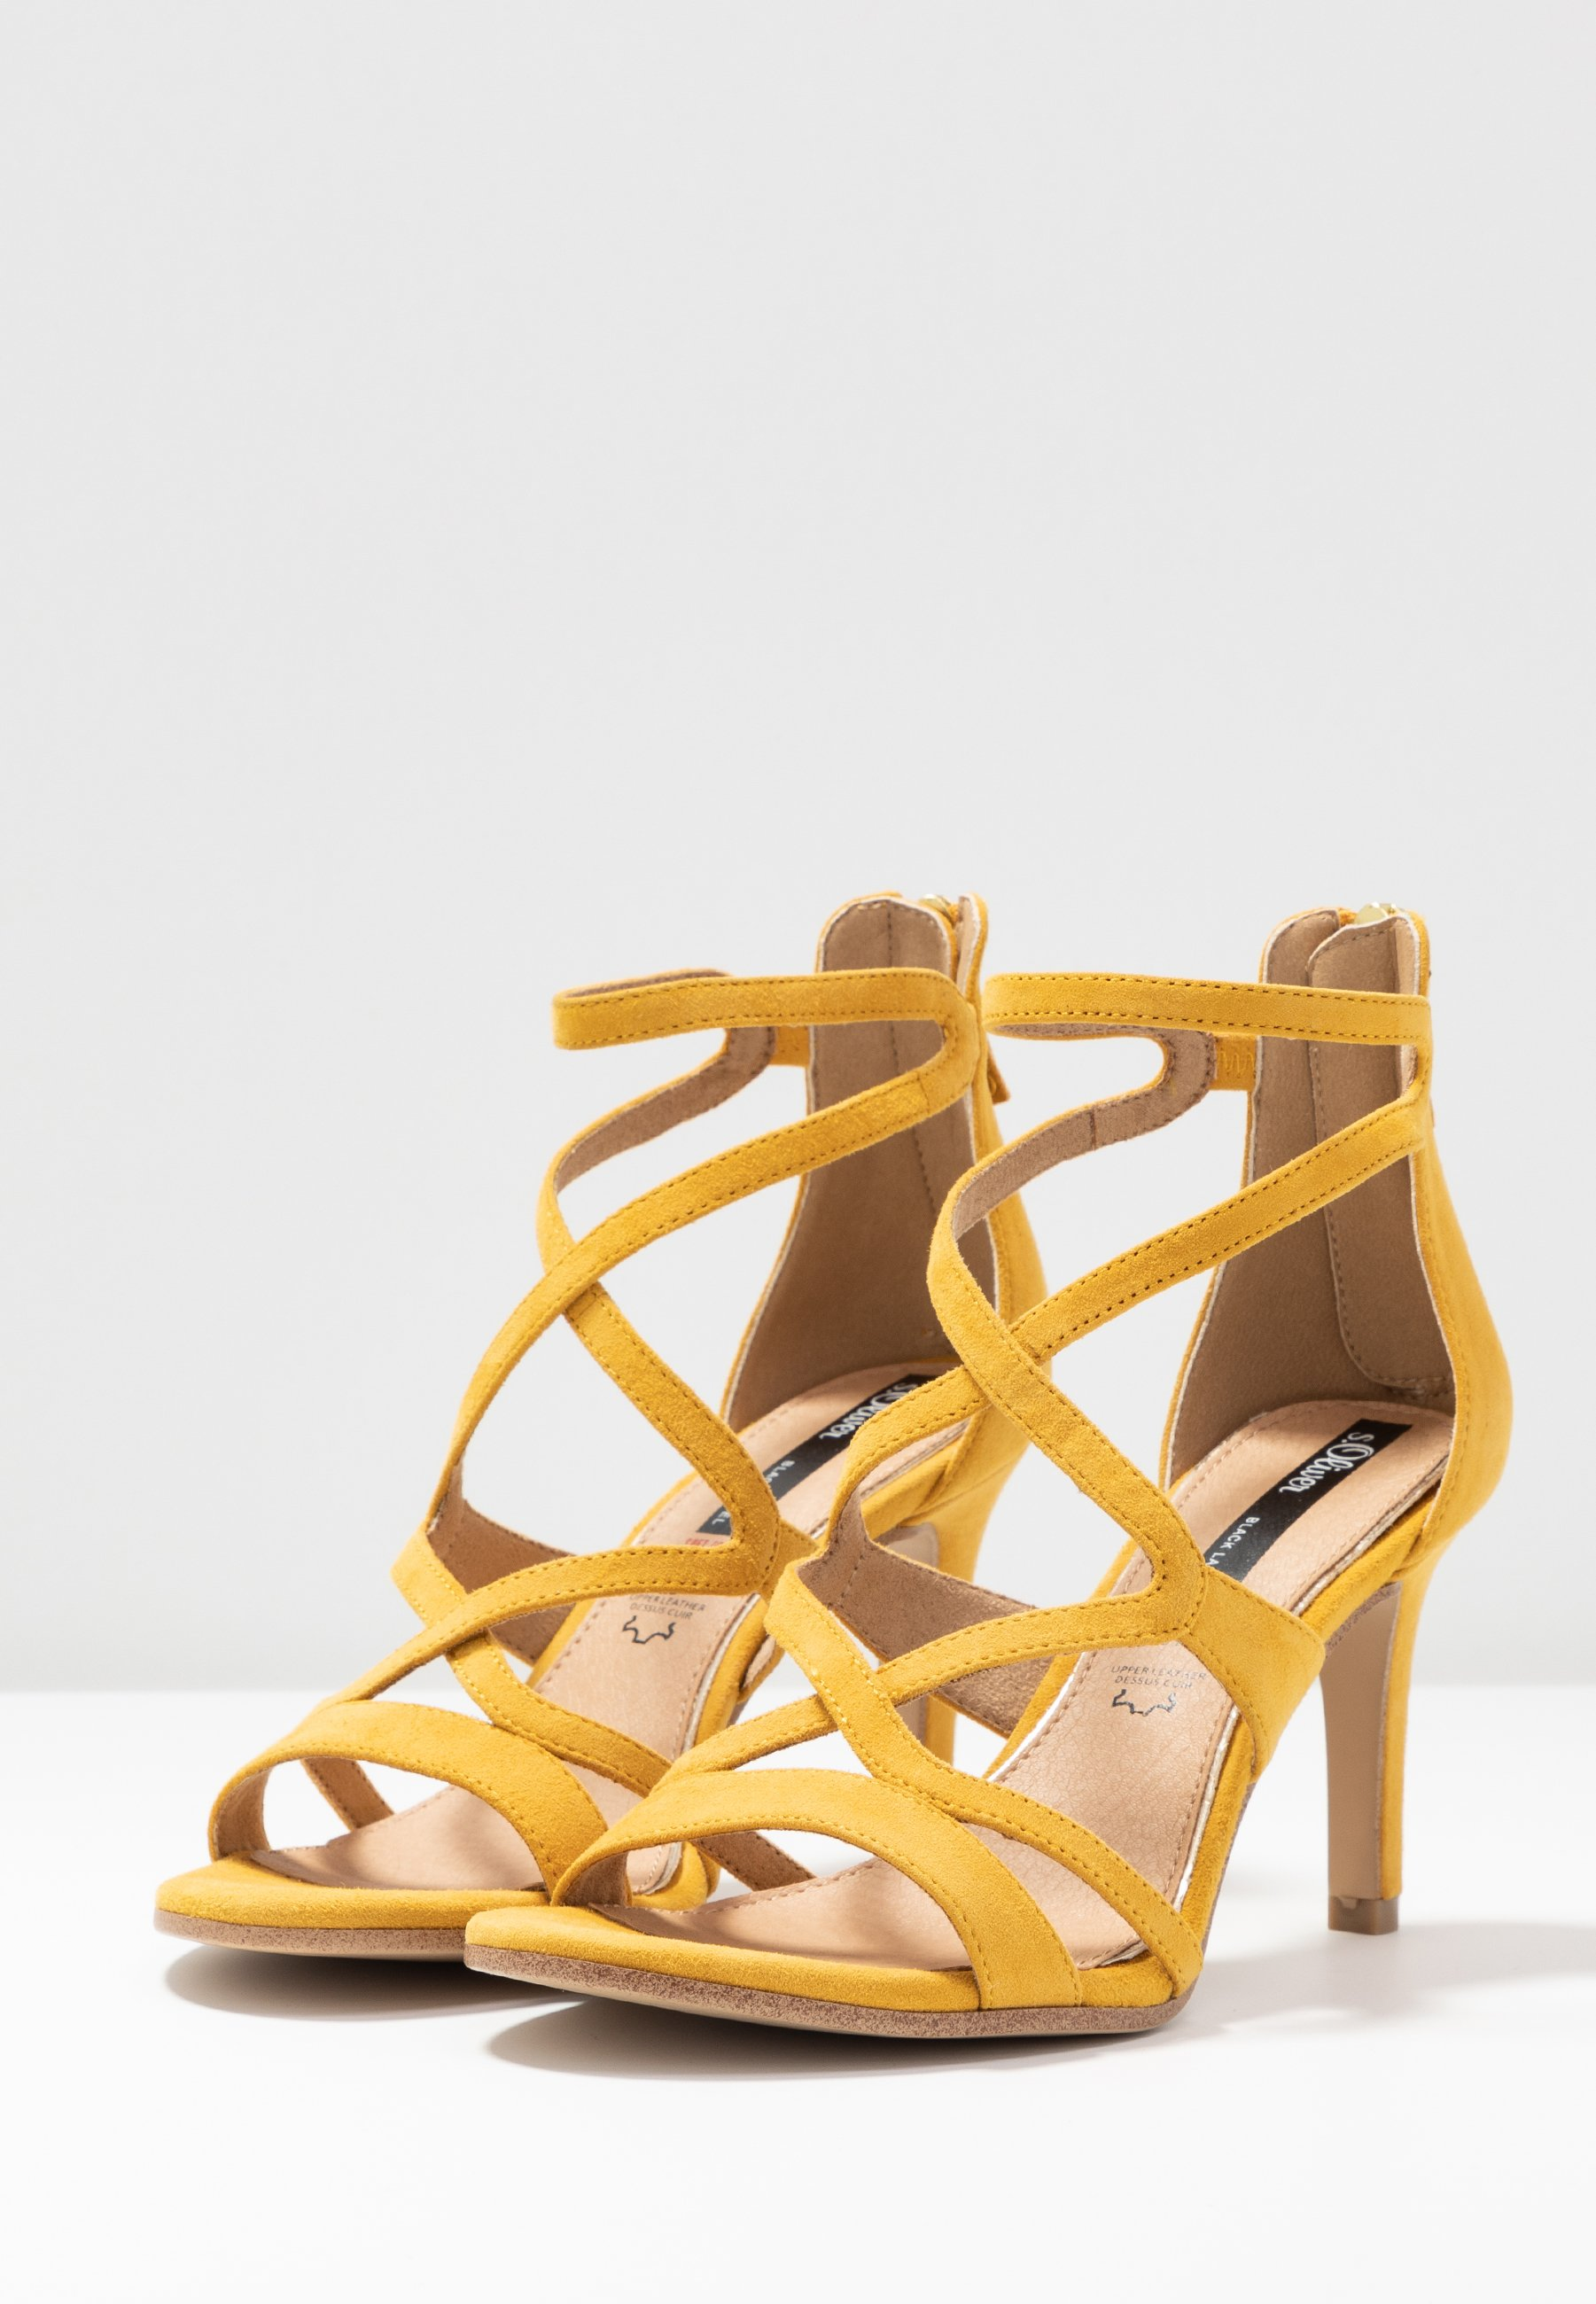 S.oliver Black Label Sandales À Talons Hauts - Yellow